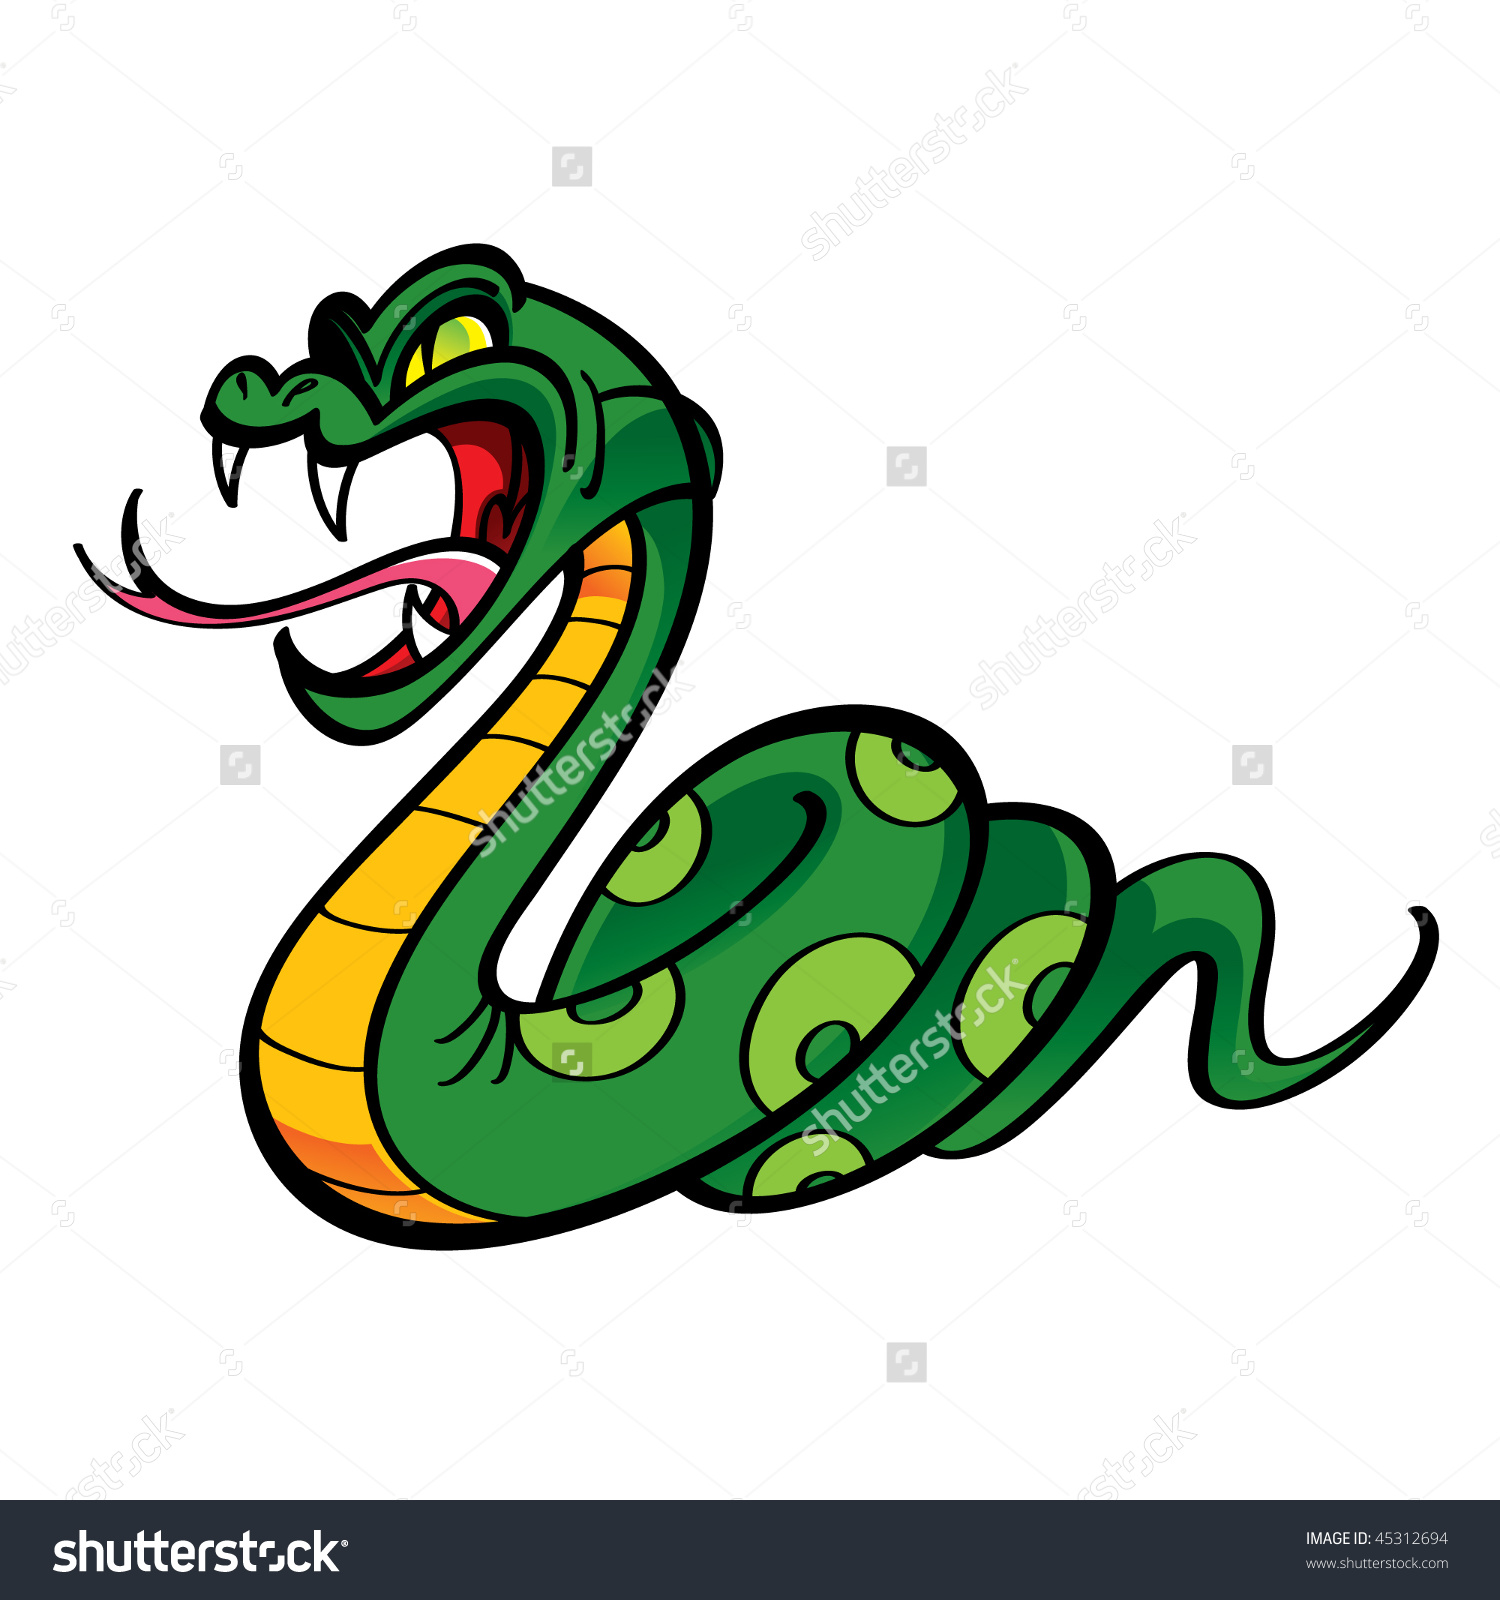 Angry Snake Stock Vector 45312694.